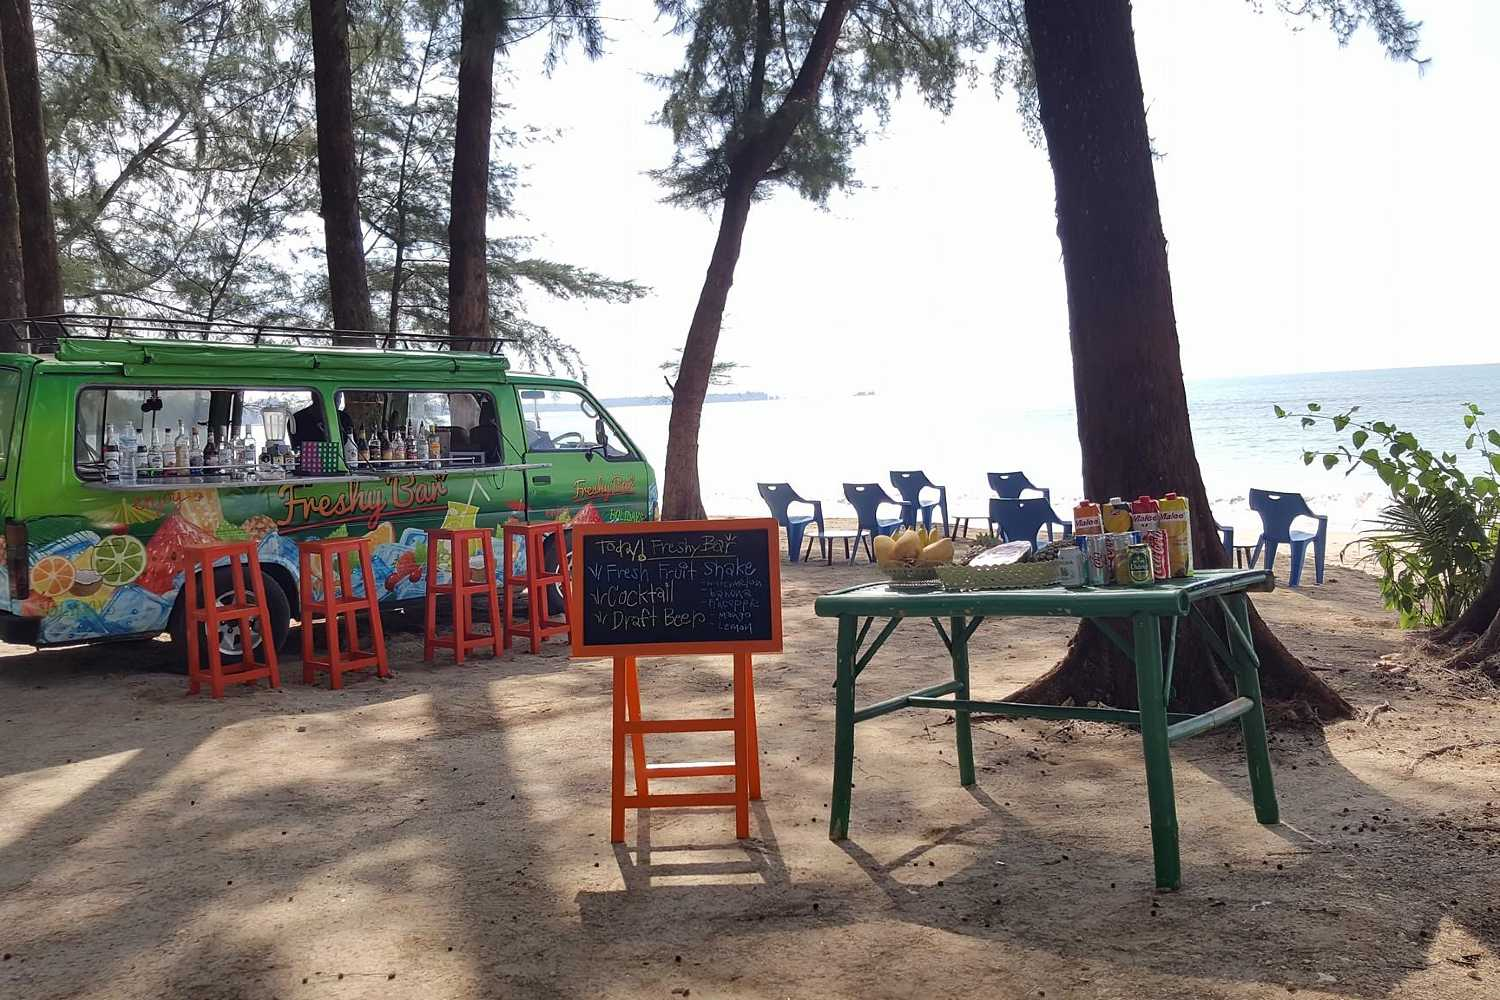 Bus of Freshy Bar on the beach with plastic chairs, sale of cocktails on the beach